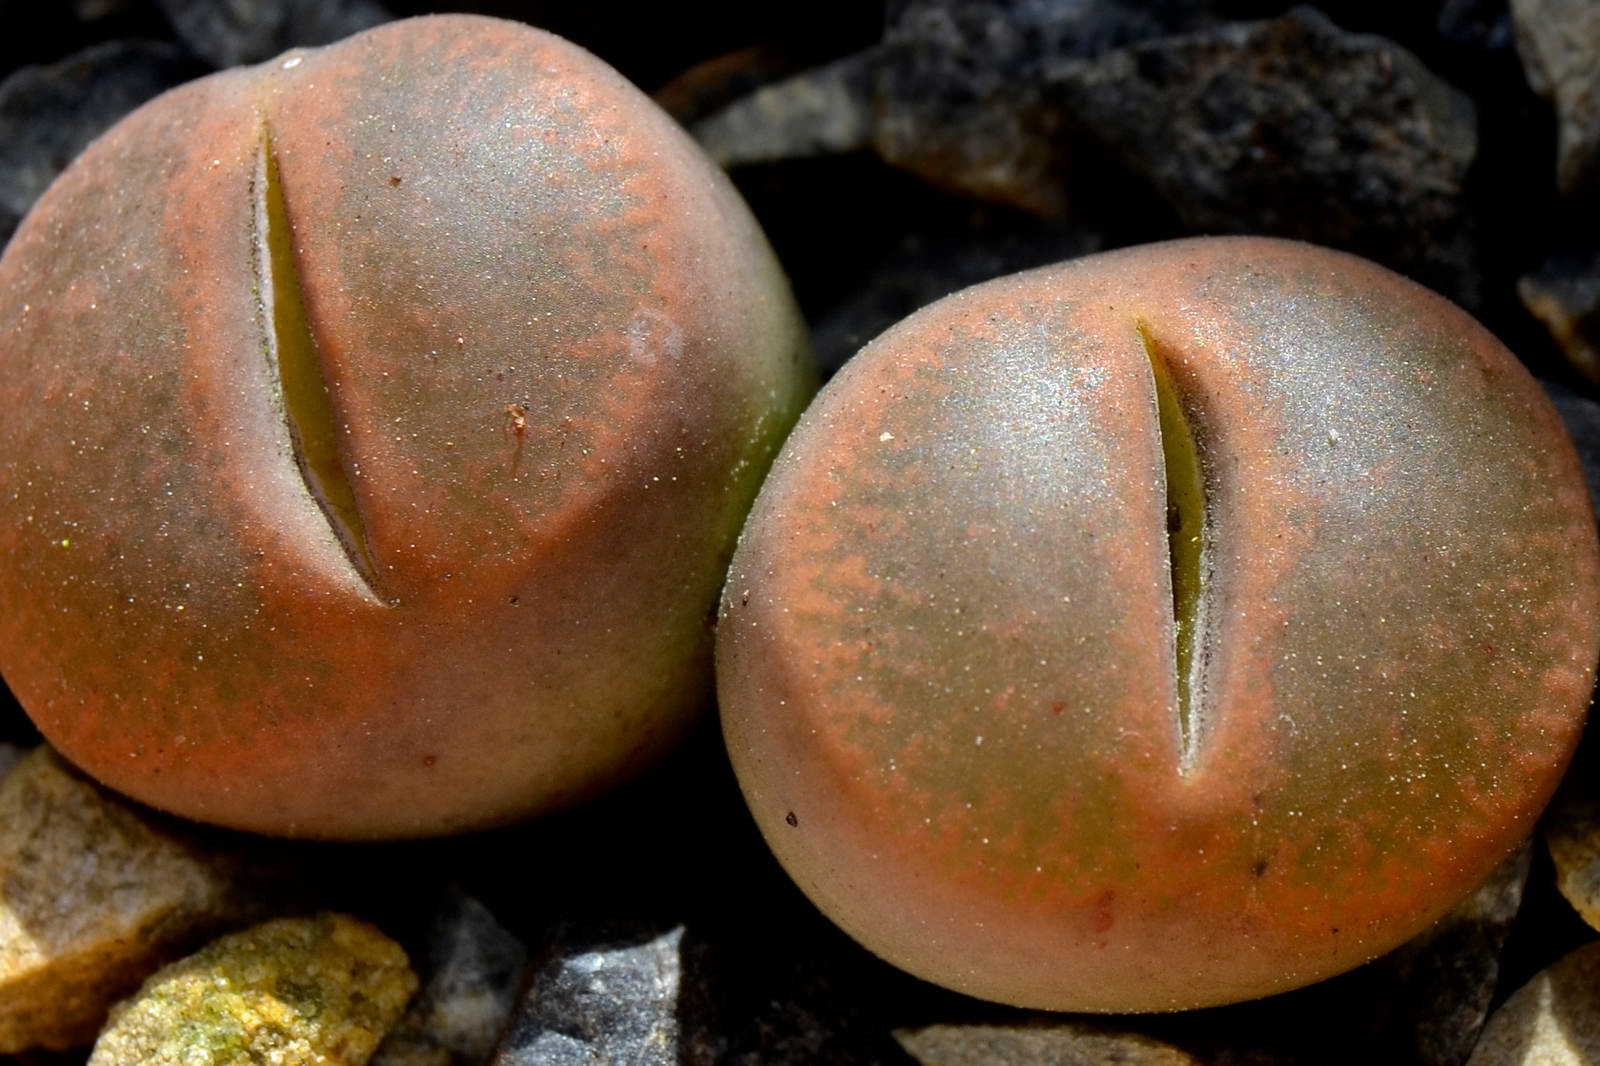 Lithops lesliei; photo courtesy of Flickr cc/Ernest McGray, Jr.